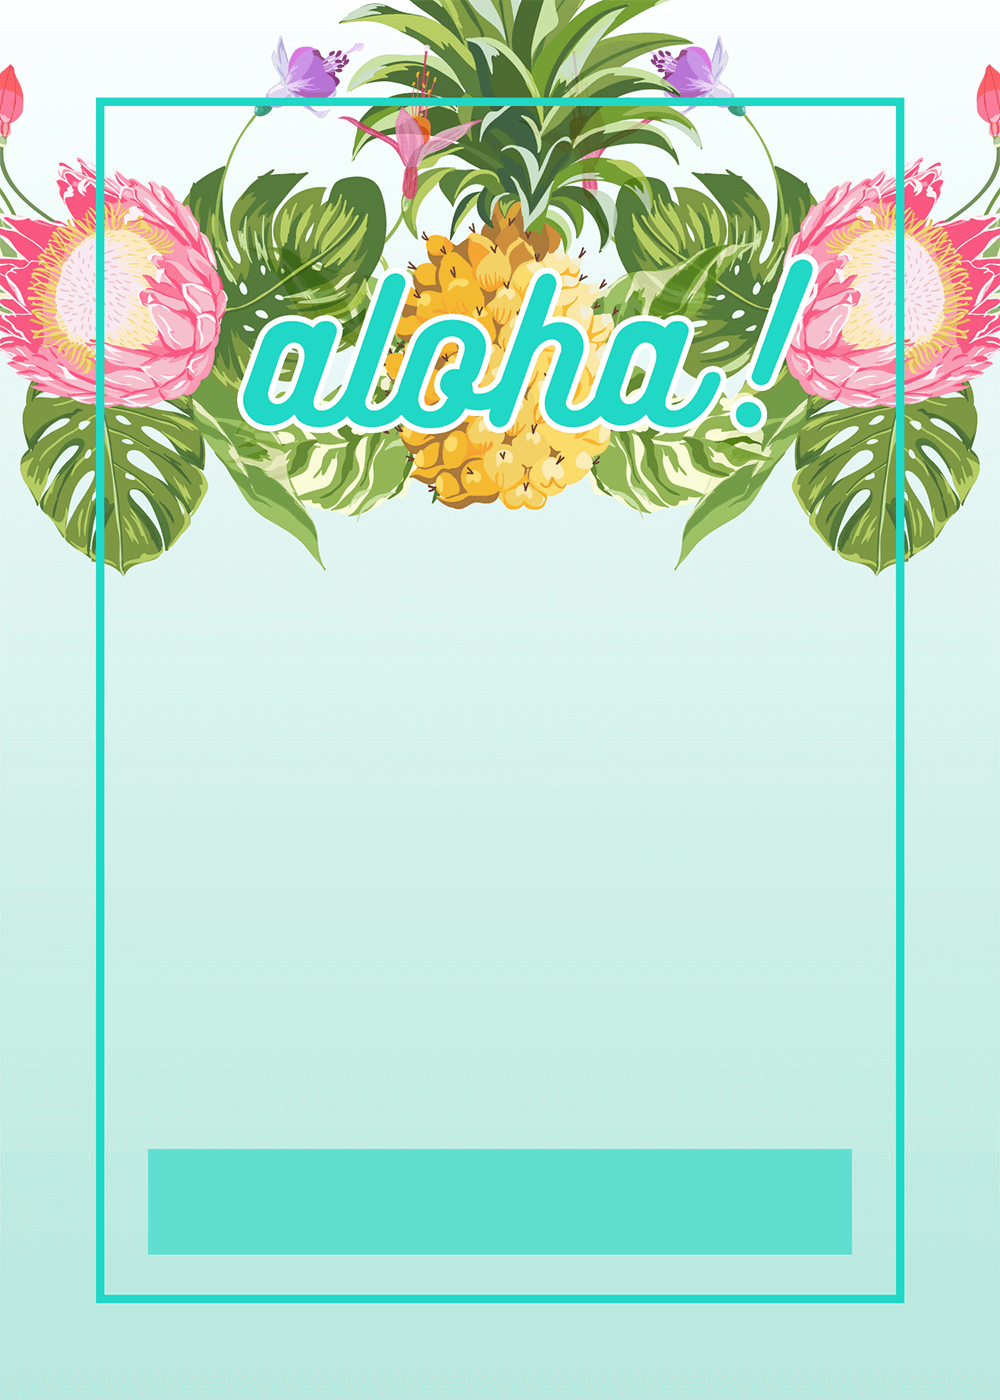 photograph about Printable Luau Invitations referred to as Pineapple Luau Perimeter - No cost Printable Birthday